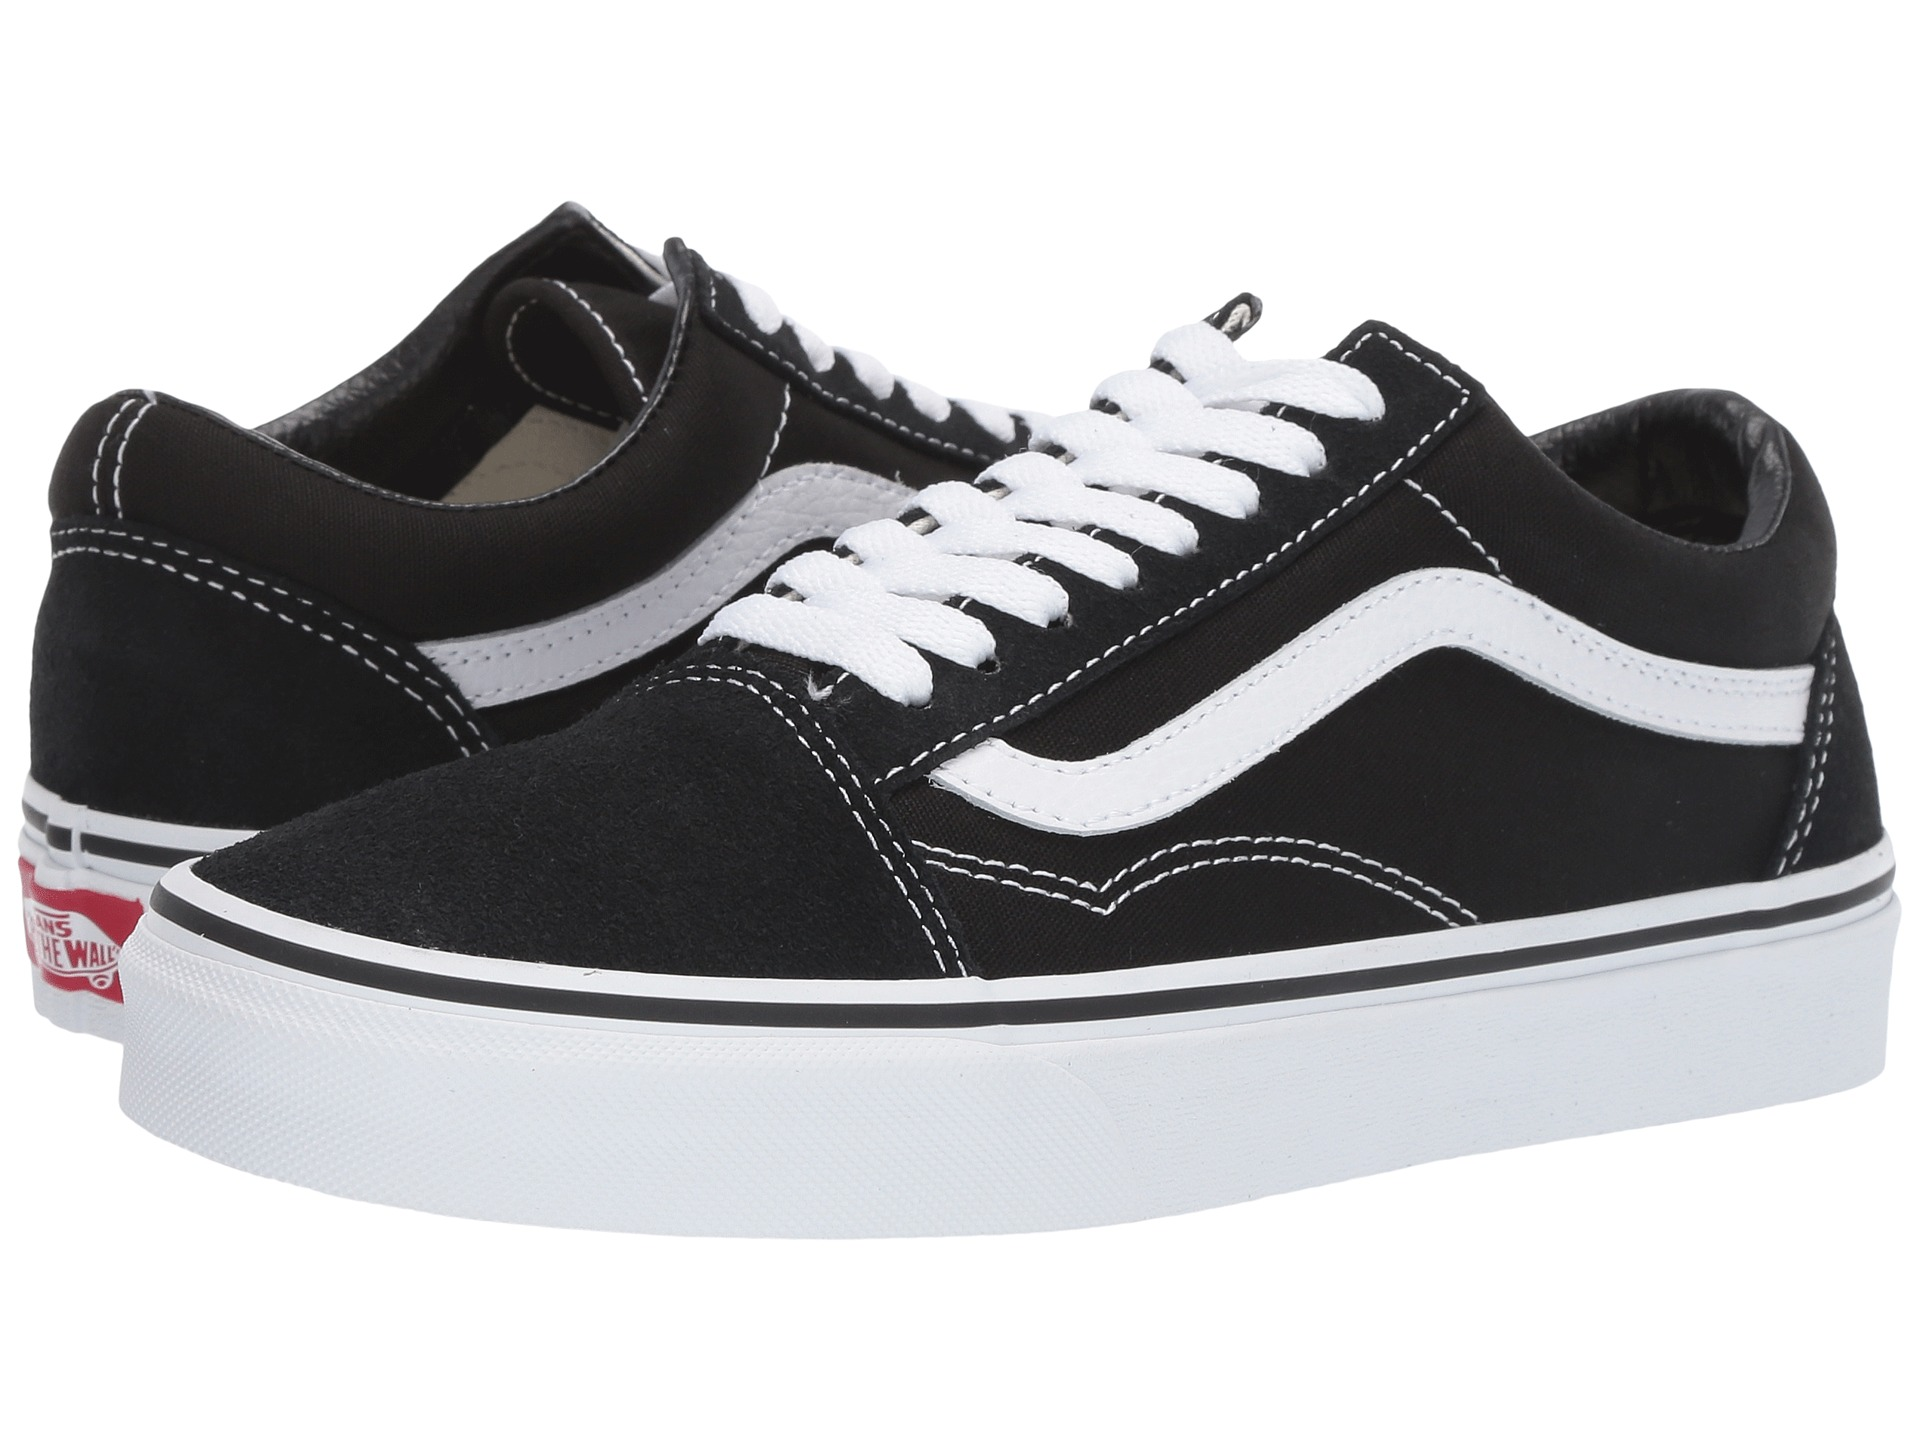 Image result for vans old skool low top